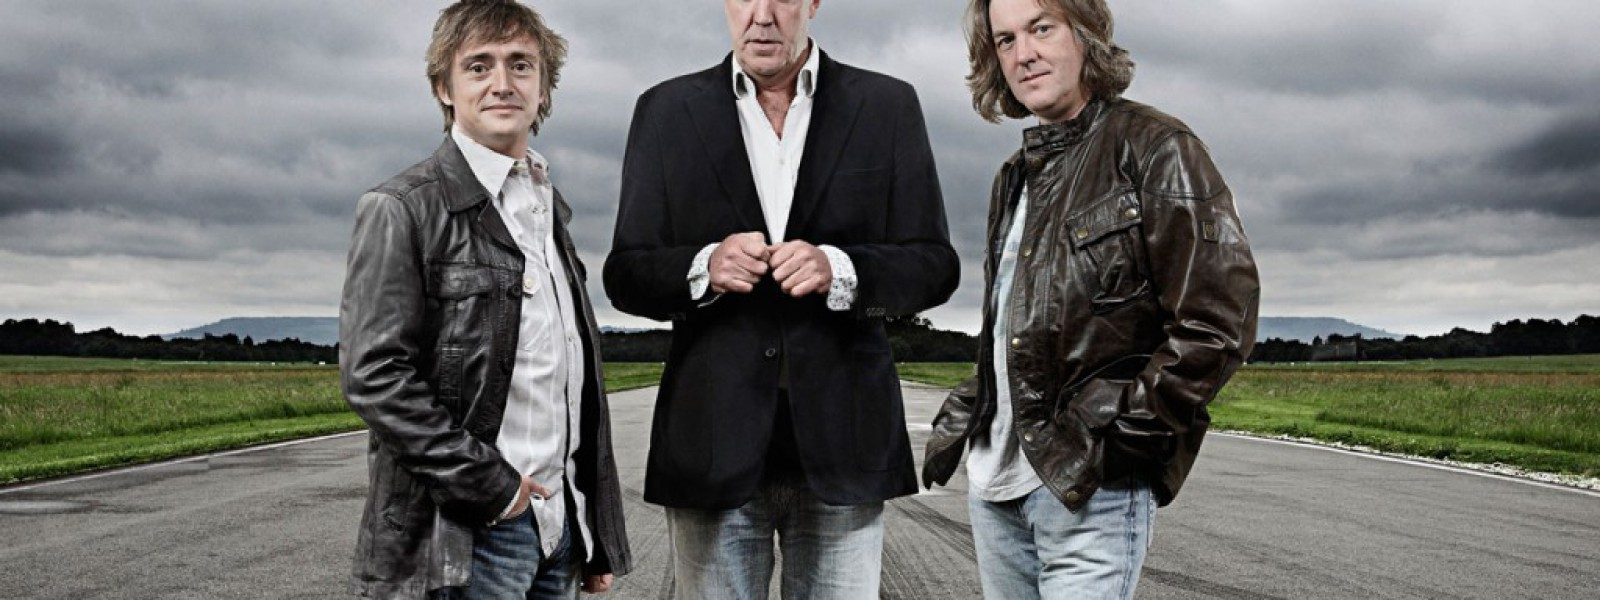 topgear_about_web-1024×576